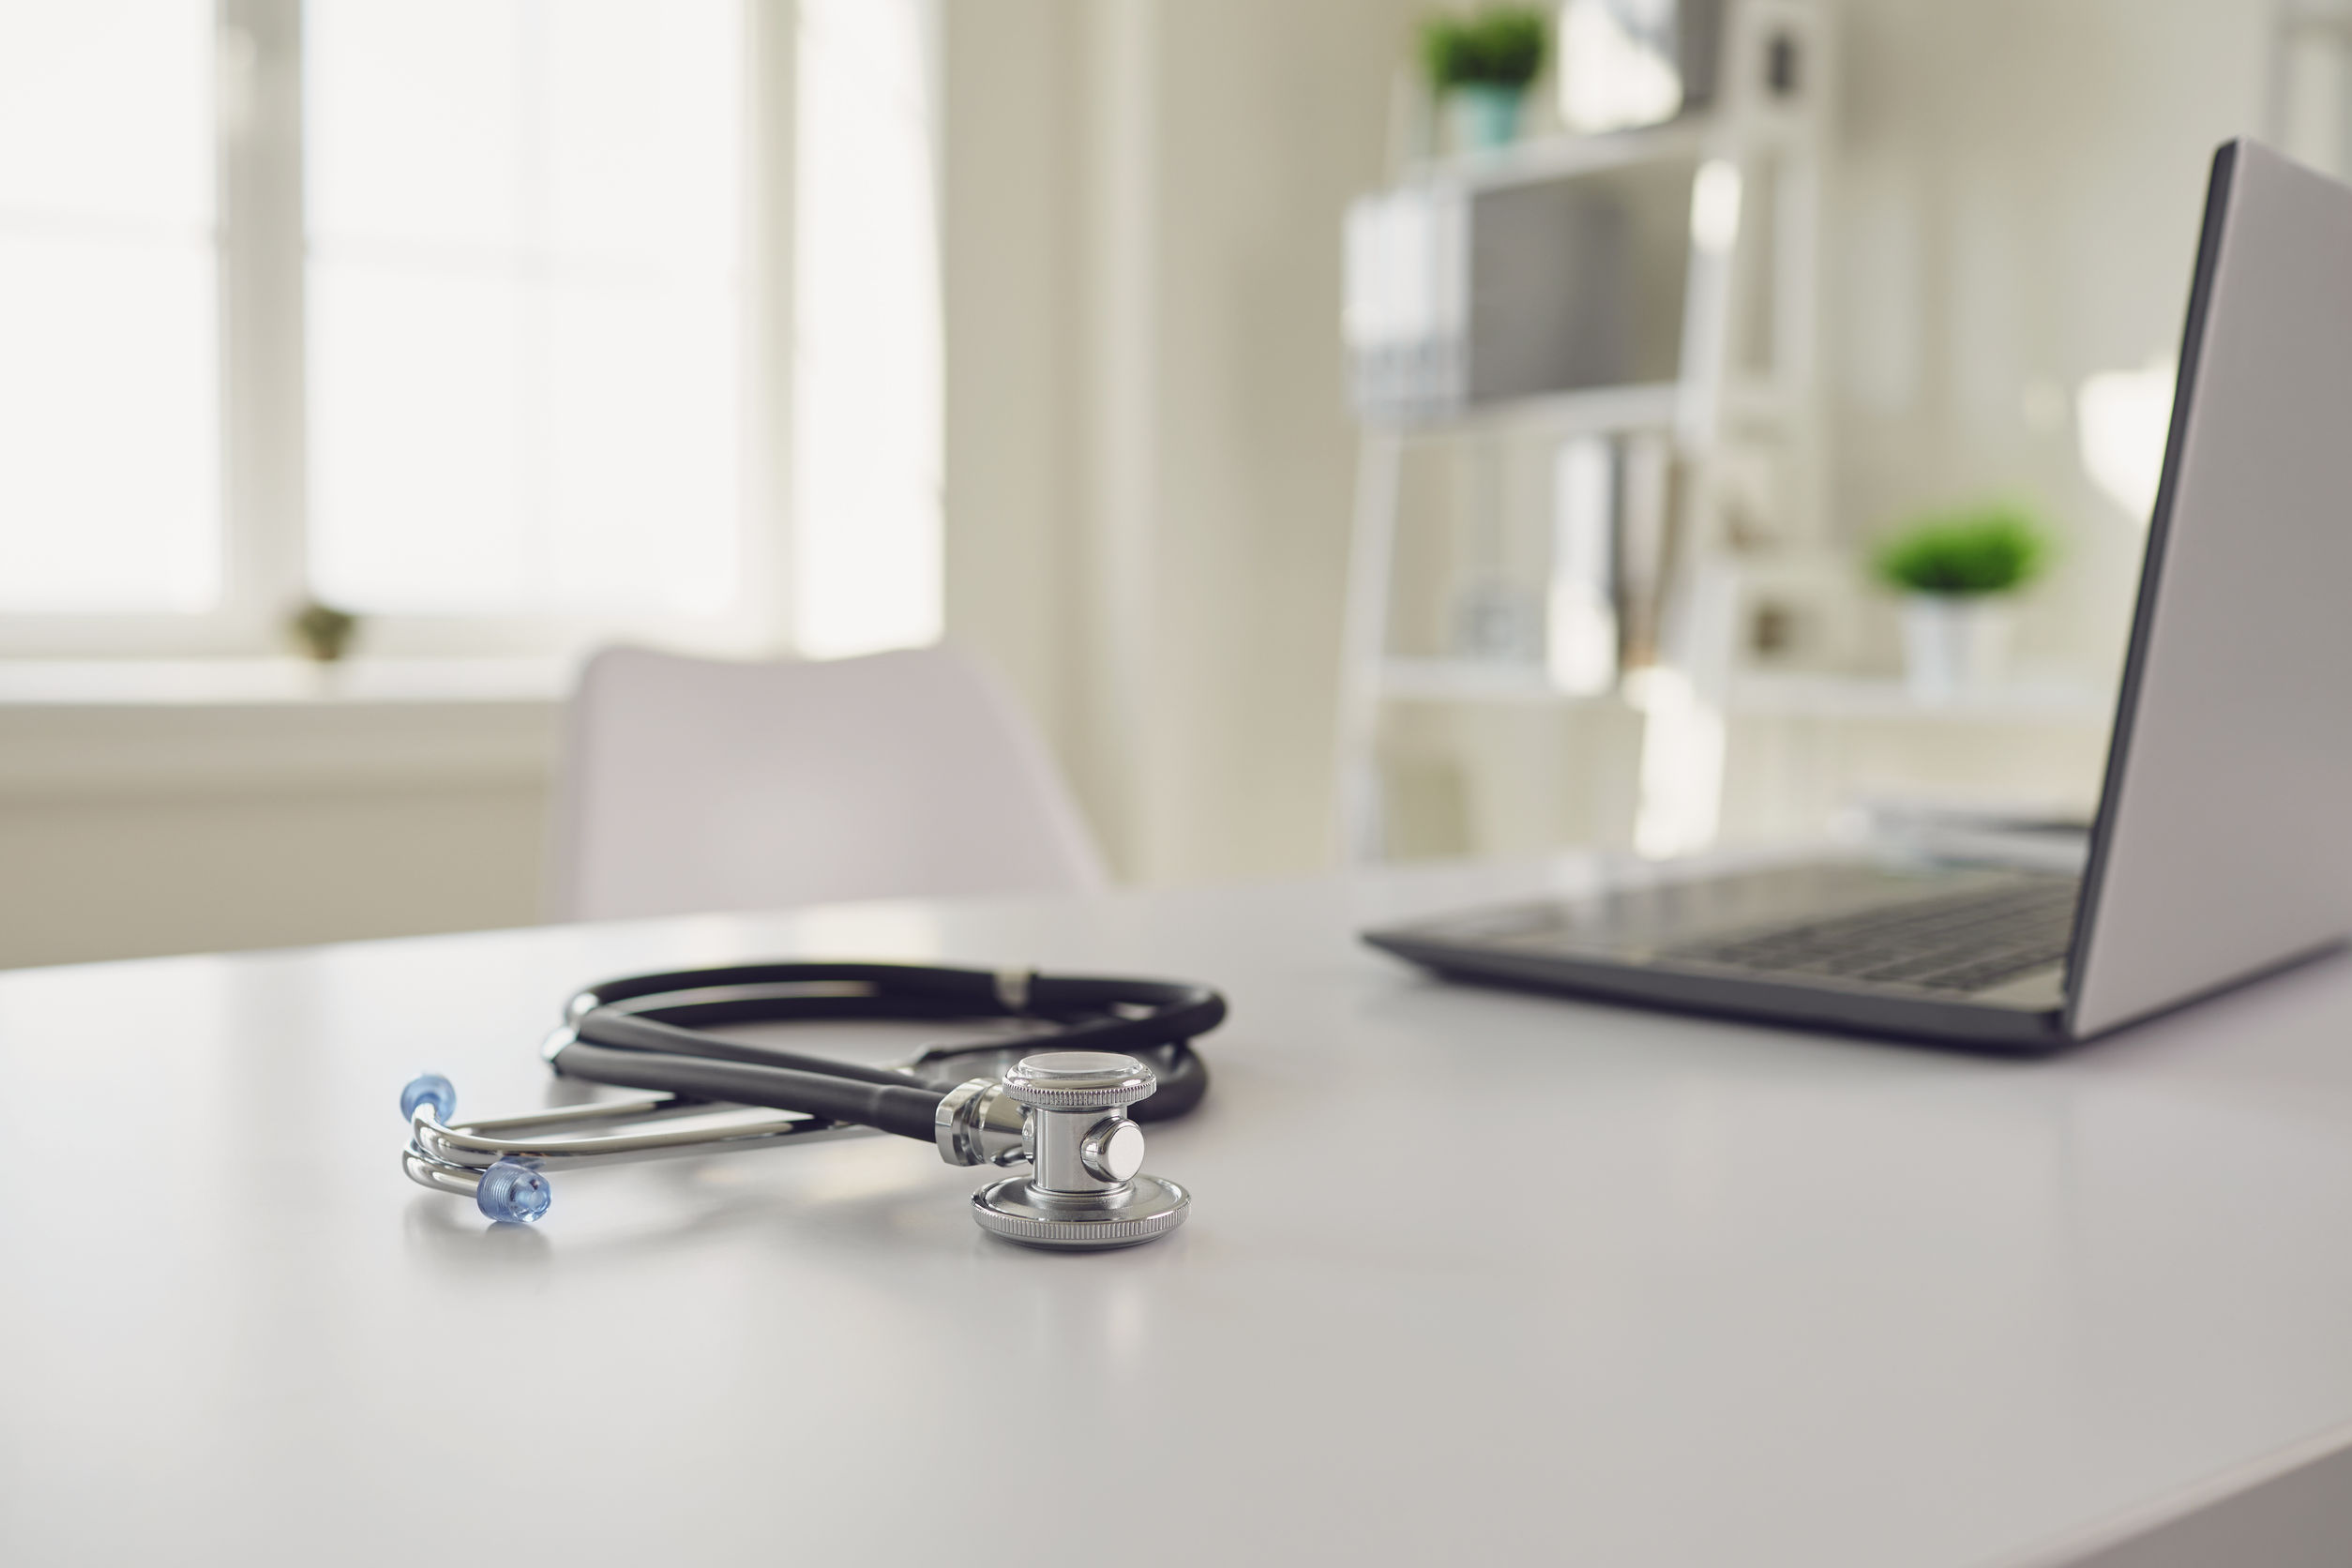 Doctor online. A stethoscope is on a white table with a laptop in blur at the hospital office. The concept of medical consultation for patients call to medical services. Consultation diagnosis remote sensing survey analysis of prescription medical insurance for sick people patients.